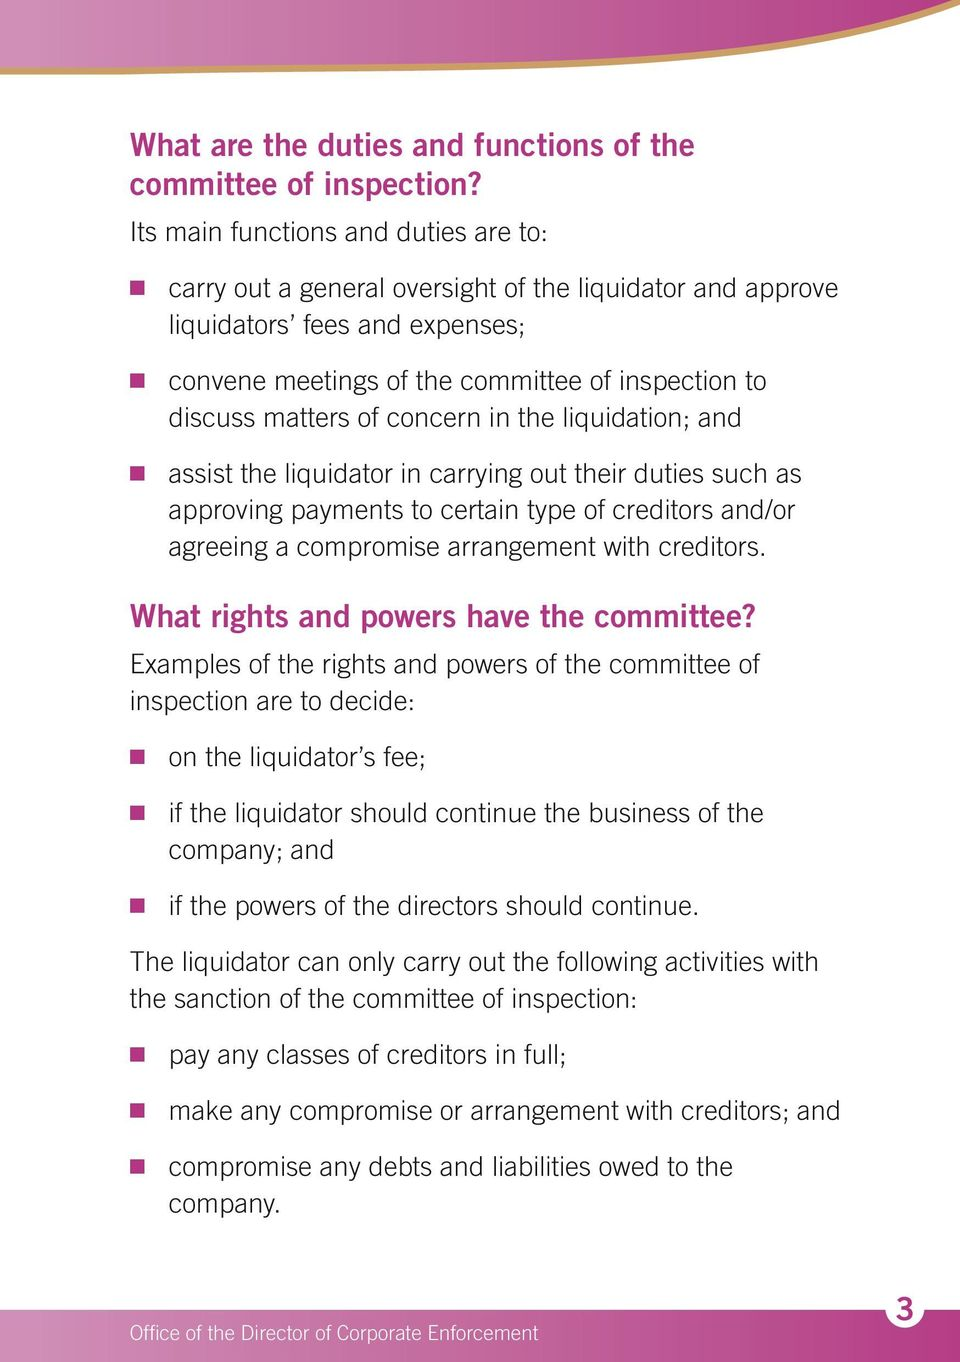 of concern in the liquidation; and n assist the liquidator in carrying out their duties such as approving payments to certain type of creditors and/or agreeing a compromise arrangement with creditors.